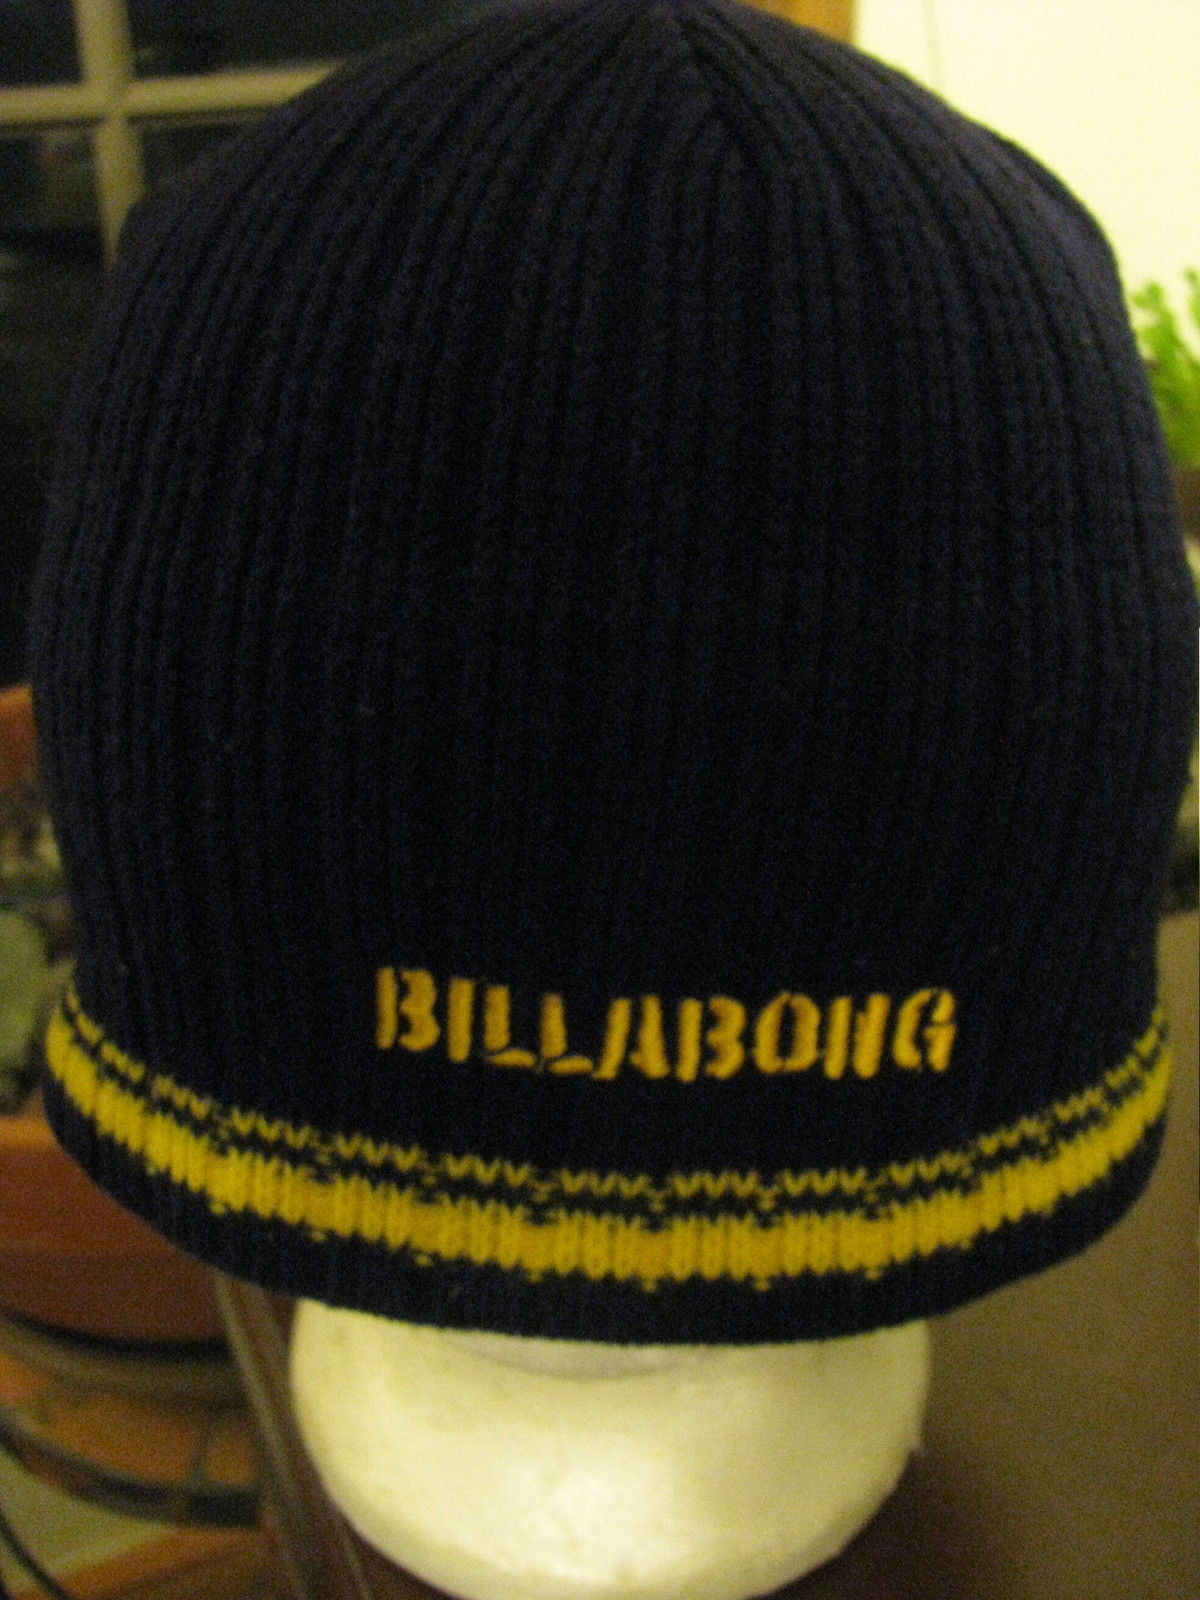 d69f96041b Knit Cap hat Beanie BILLABONG knit cap tossel cap Beanie Pom Pom winter hat  -  14.83